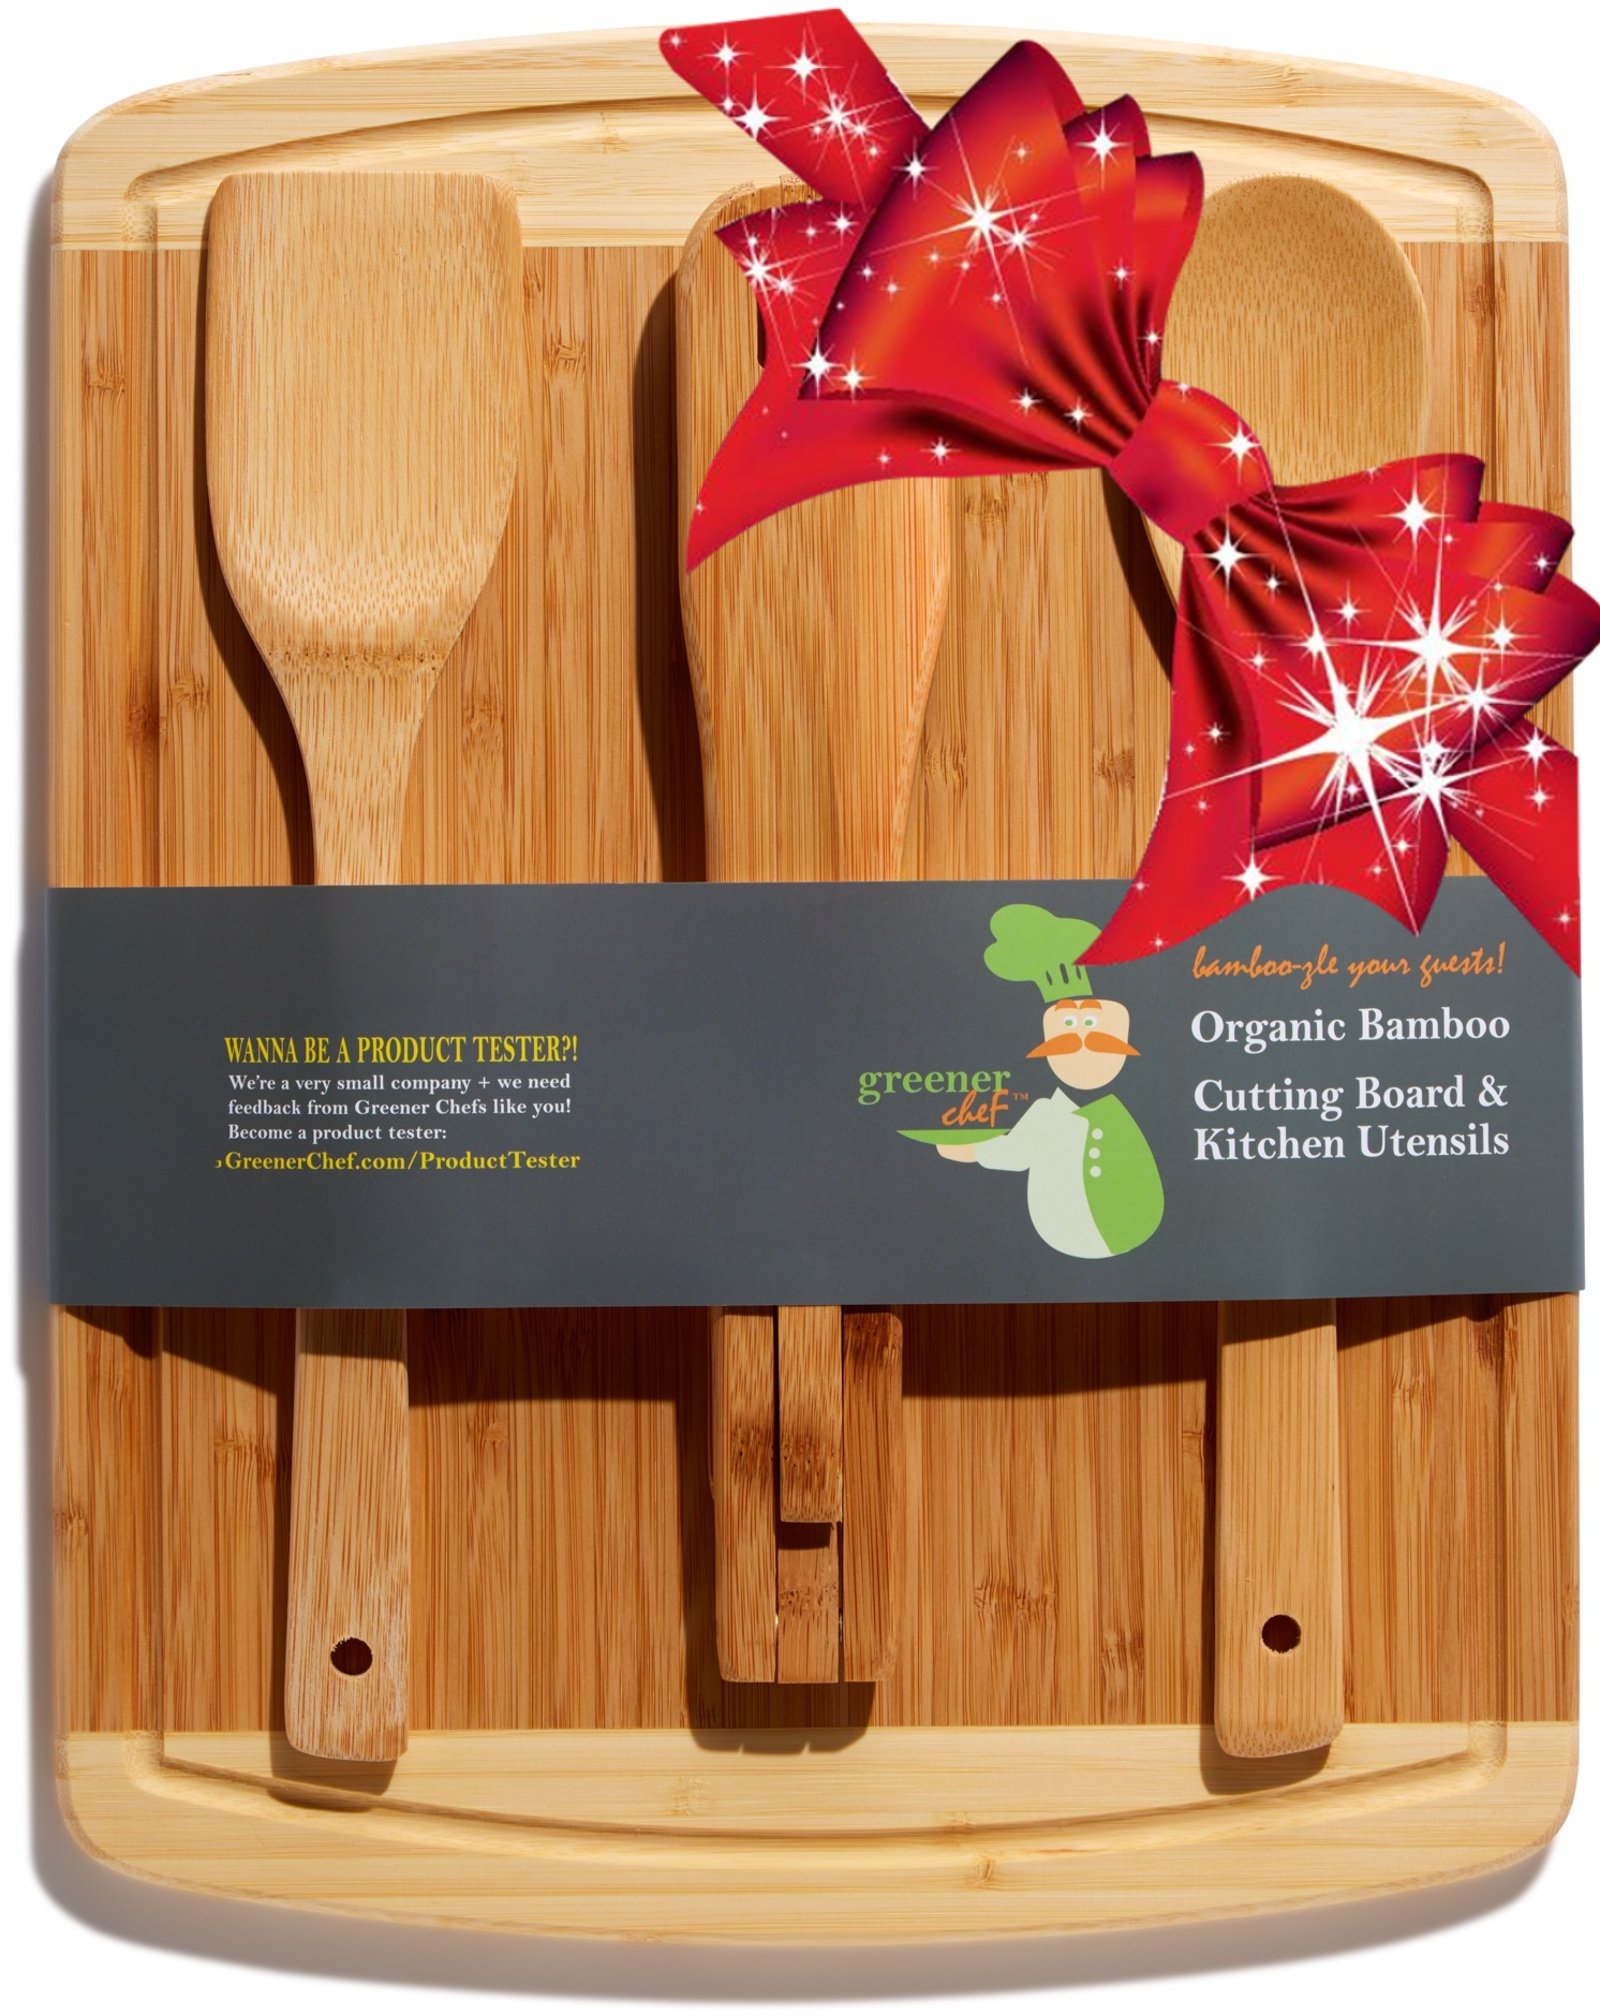 Bamboo Cutting Board & Cheese Board Housewarming Gifts Set - For Mothers Day Gift, Wedding Gift, Personalized Gifts & Bridal Shower Gift Idea - Best Wood Cutting Boards for Kitchen - 3 BONUS Utensils